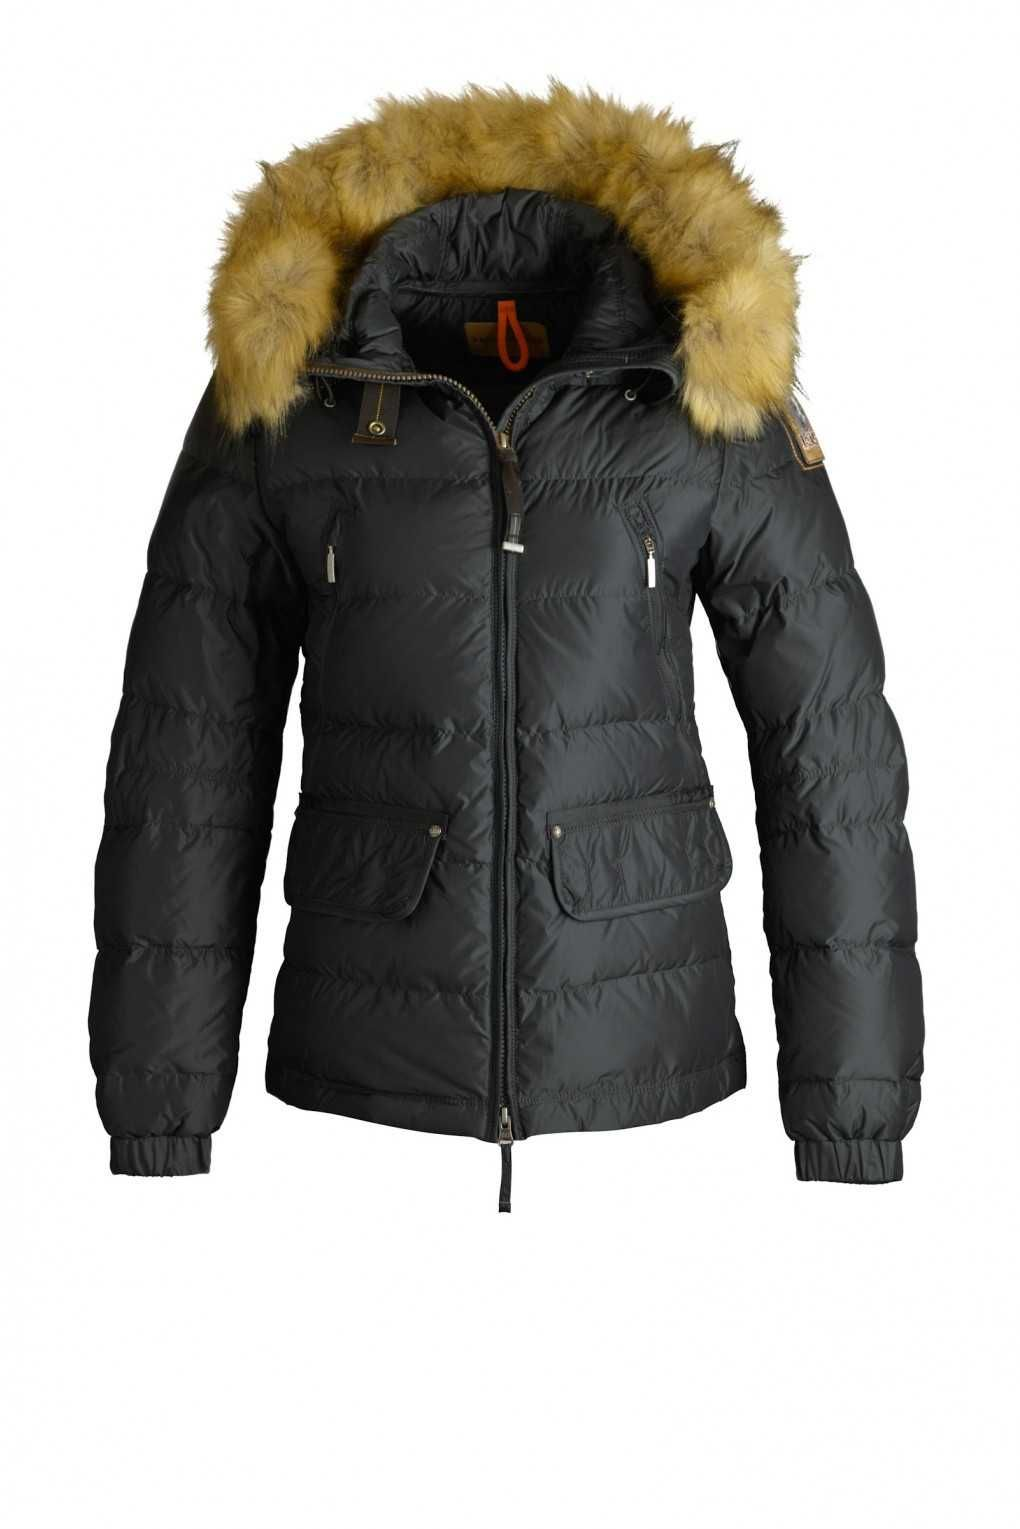 parajumpers coat sale